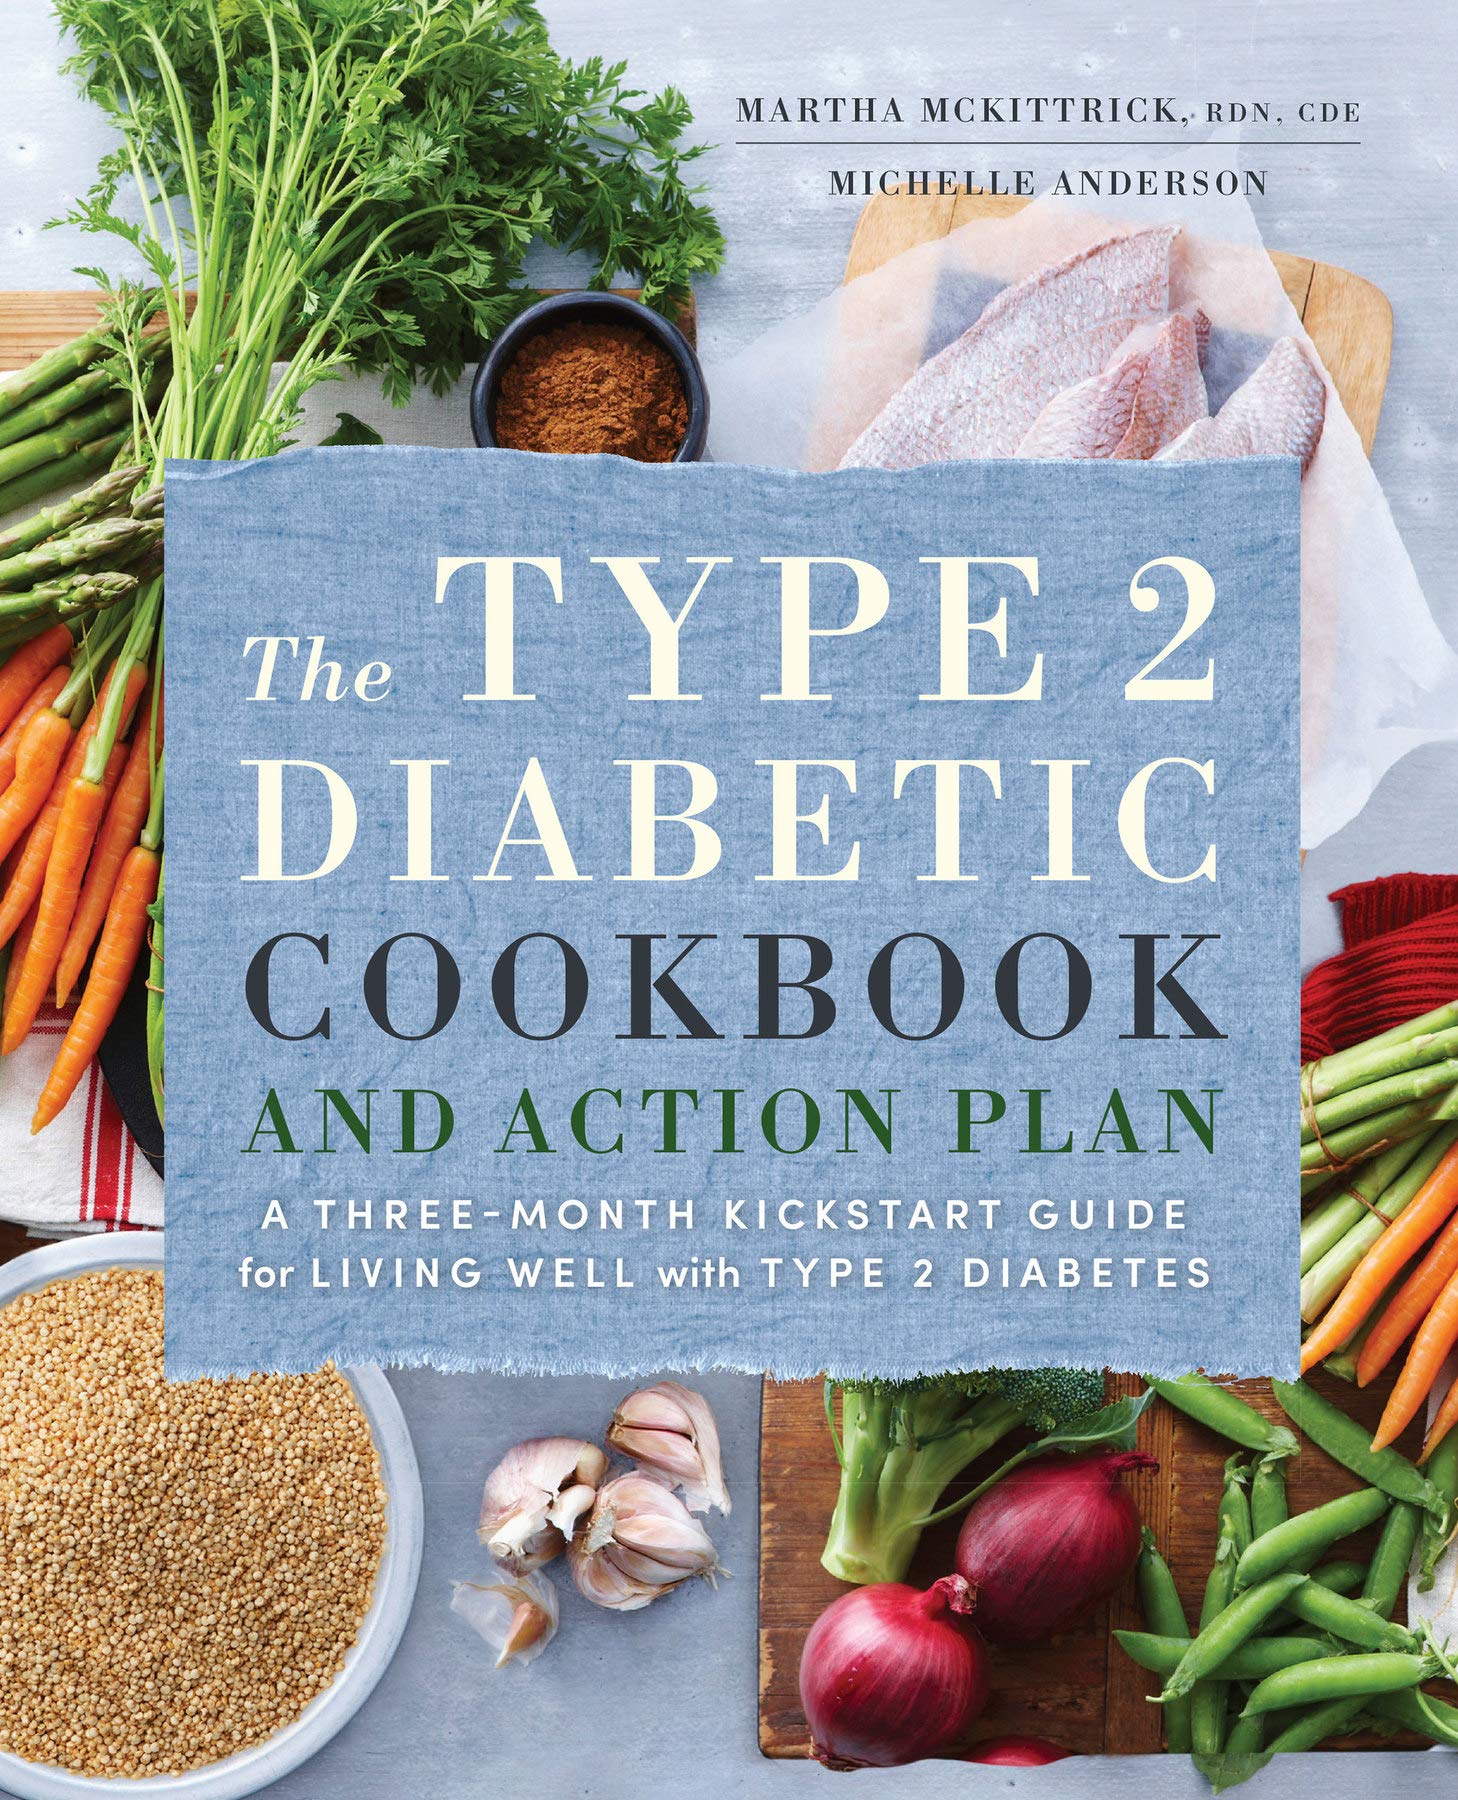 The Type 2 Diabetic Cookbook And Action Plan